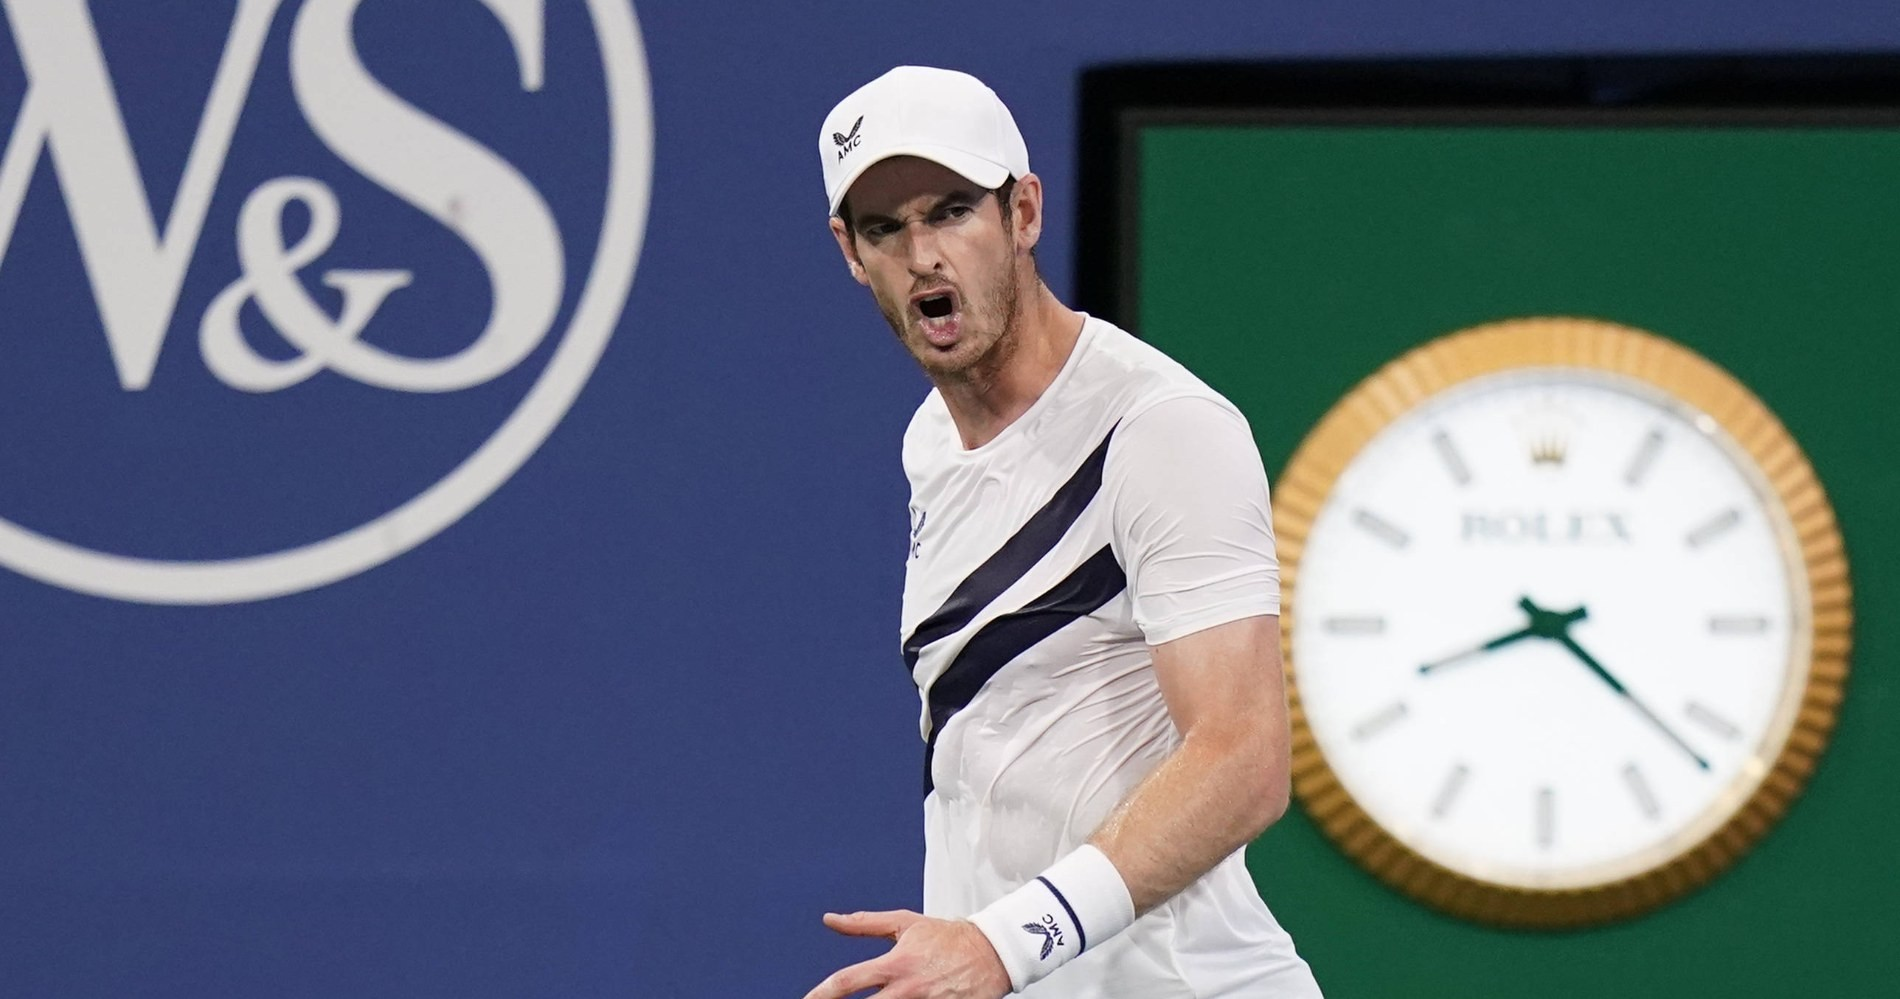 Andy Murray, Western & Southern Open (Flushing Meadows / New York), 2020